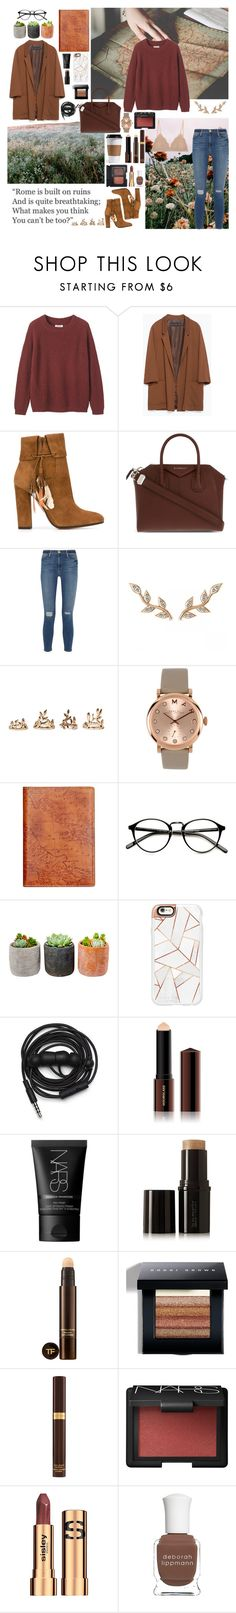 """""""We are the poisoned youth"""" by angie-5soslm ❤ liked on Polyvore featuring Toast, Zara, Aquazzura, Givenchy, Frame Denim, Allurez, Forever 21, Marc by Marc Jacobs, Patricia Nash and Shop Succulents"""